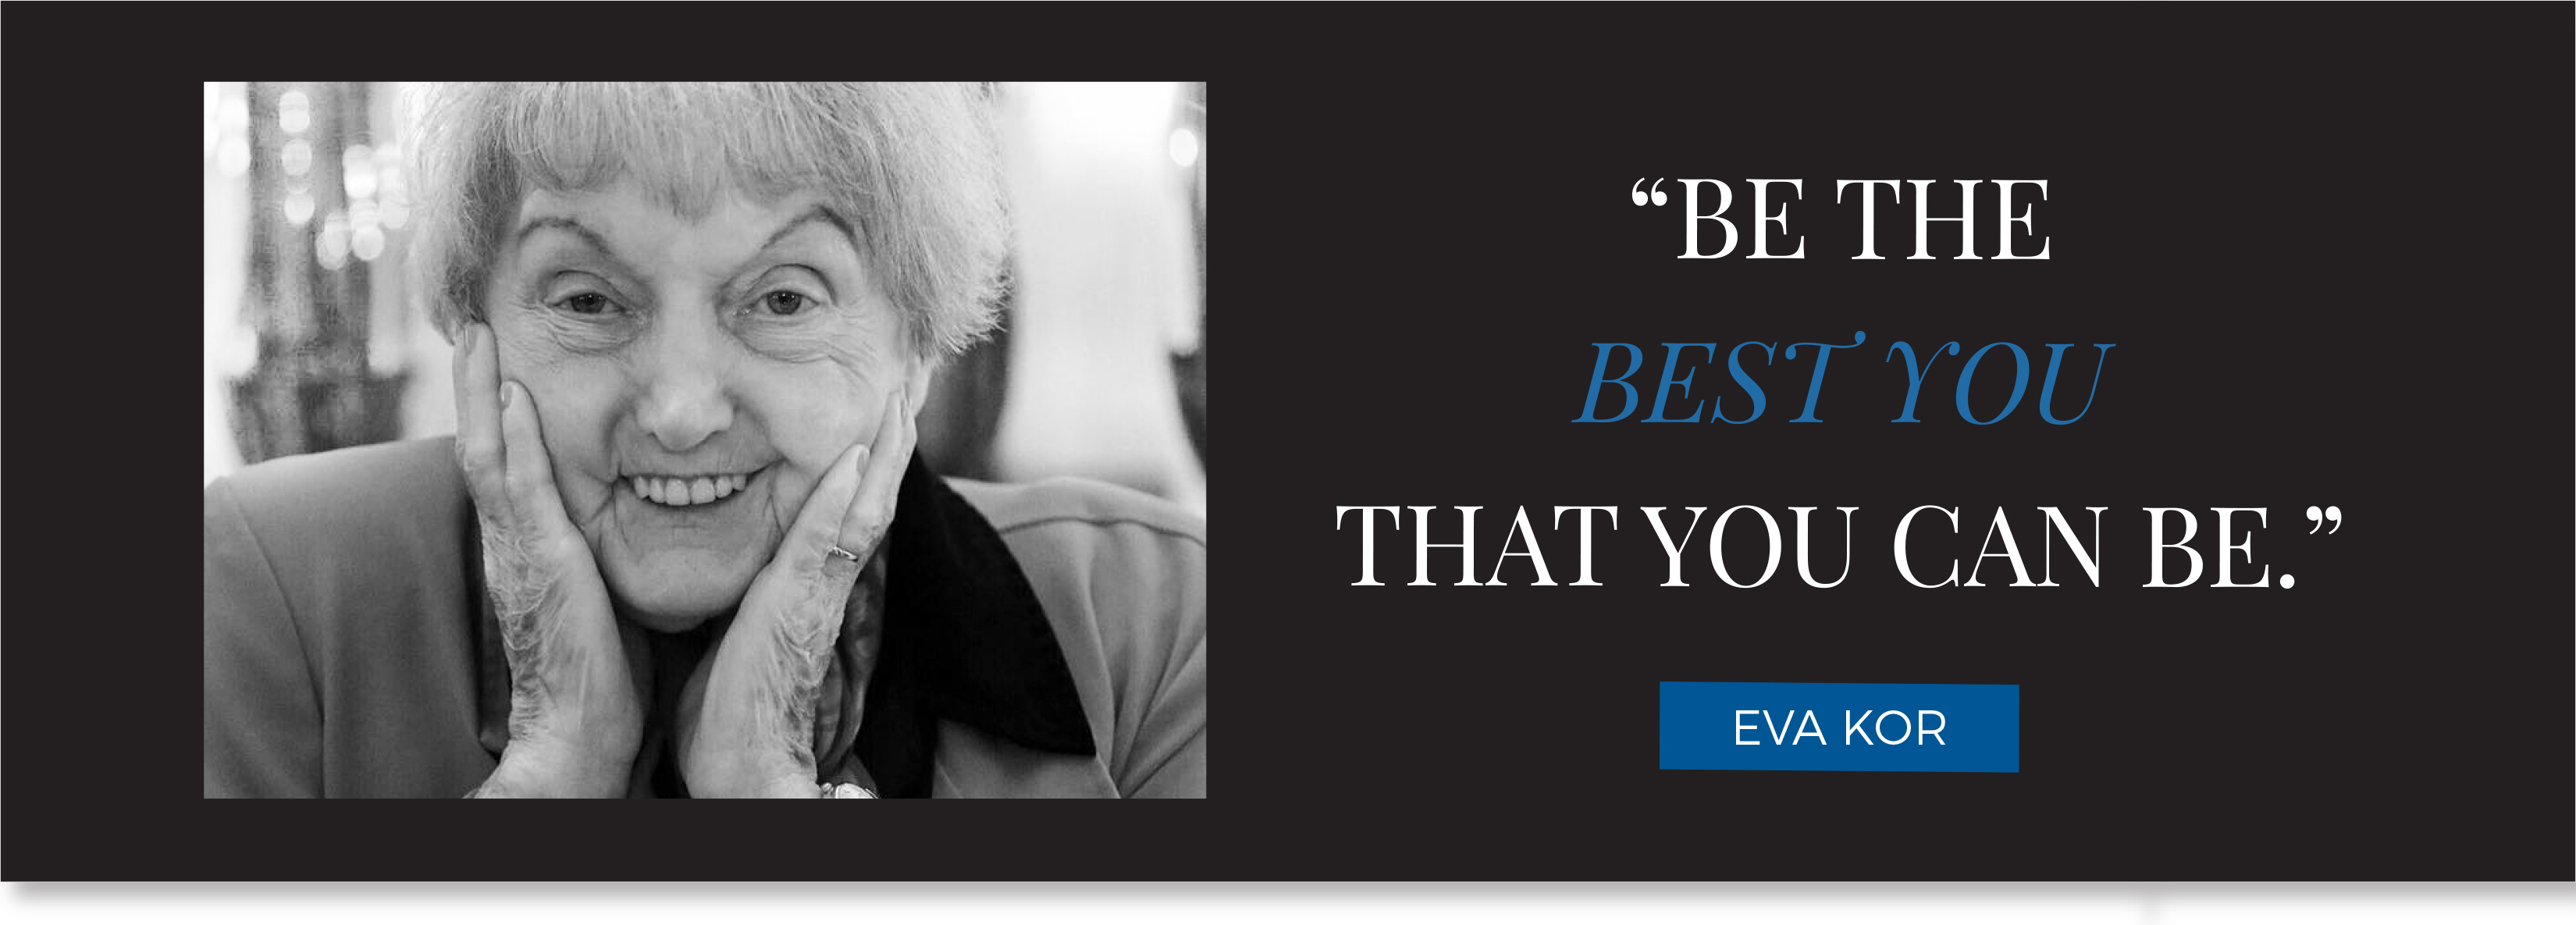 """Be the best you that you can be."" – Eva Kor"